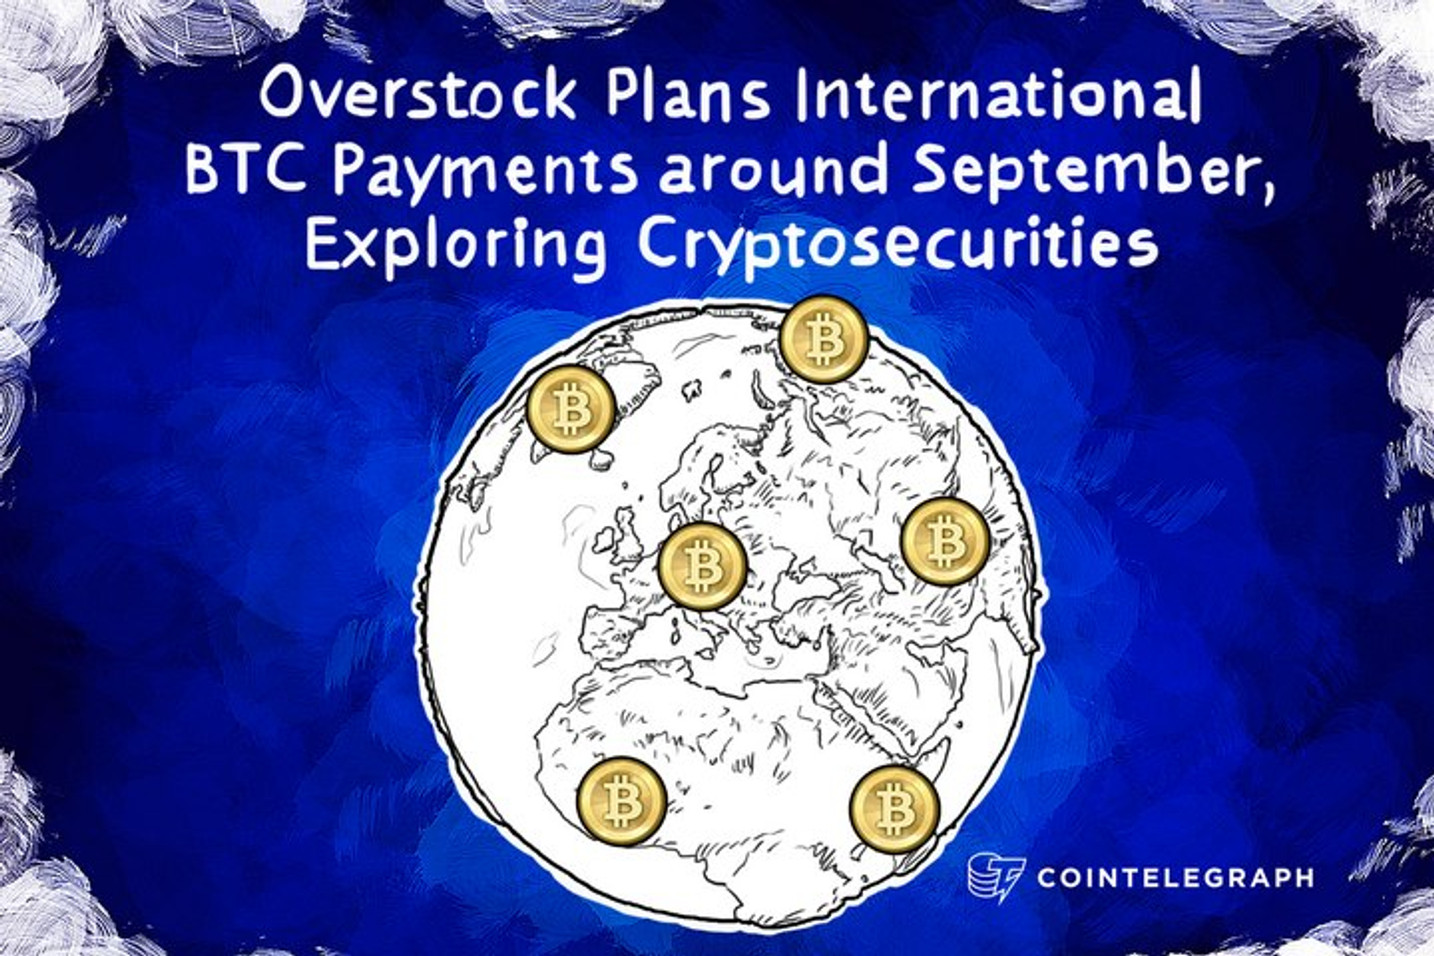 Overstock Plans International BTC Payments around September, Exploring Cryptosecurities